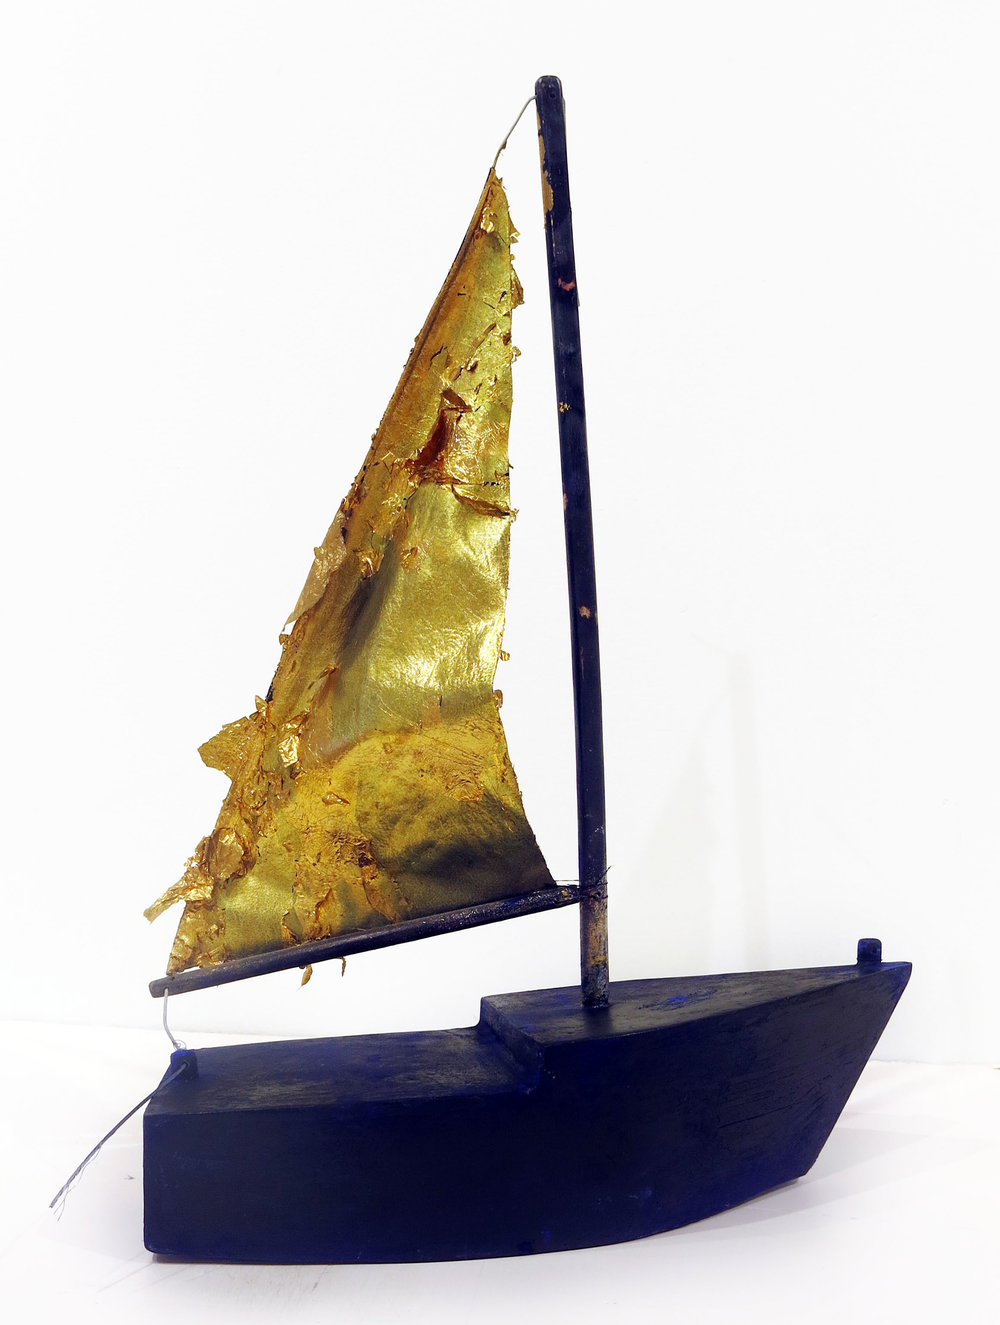 Herbert Reichert,  Untitled (sailboat),  2015, oil, wood glue, foamcore, pastel, wood, leather, gold leaf, 20.5h x 14w x 6.5d in.